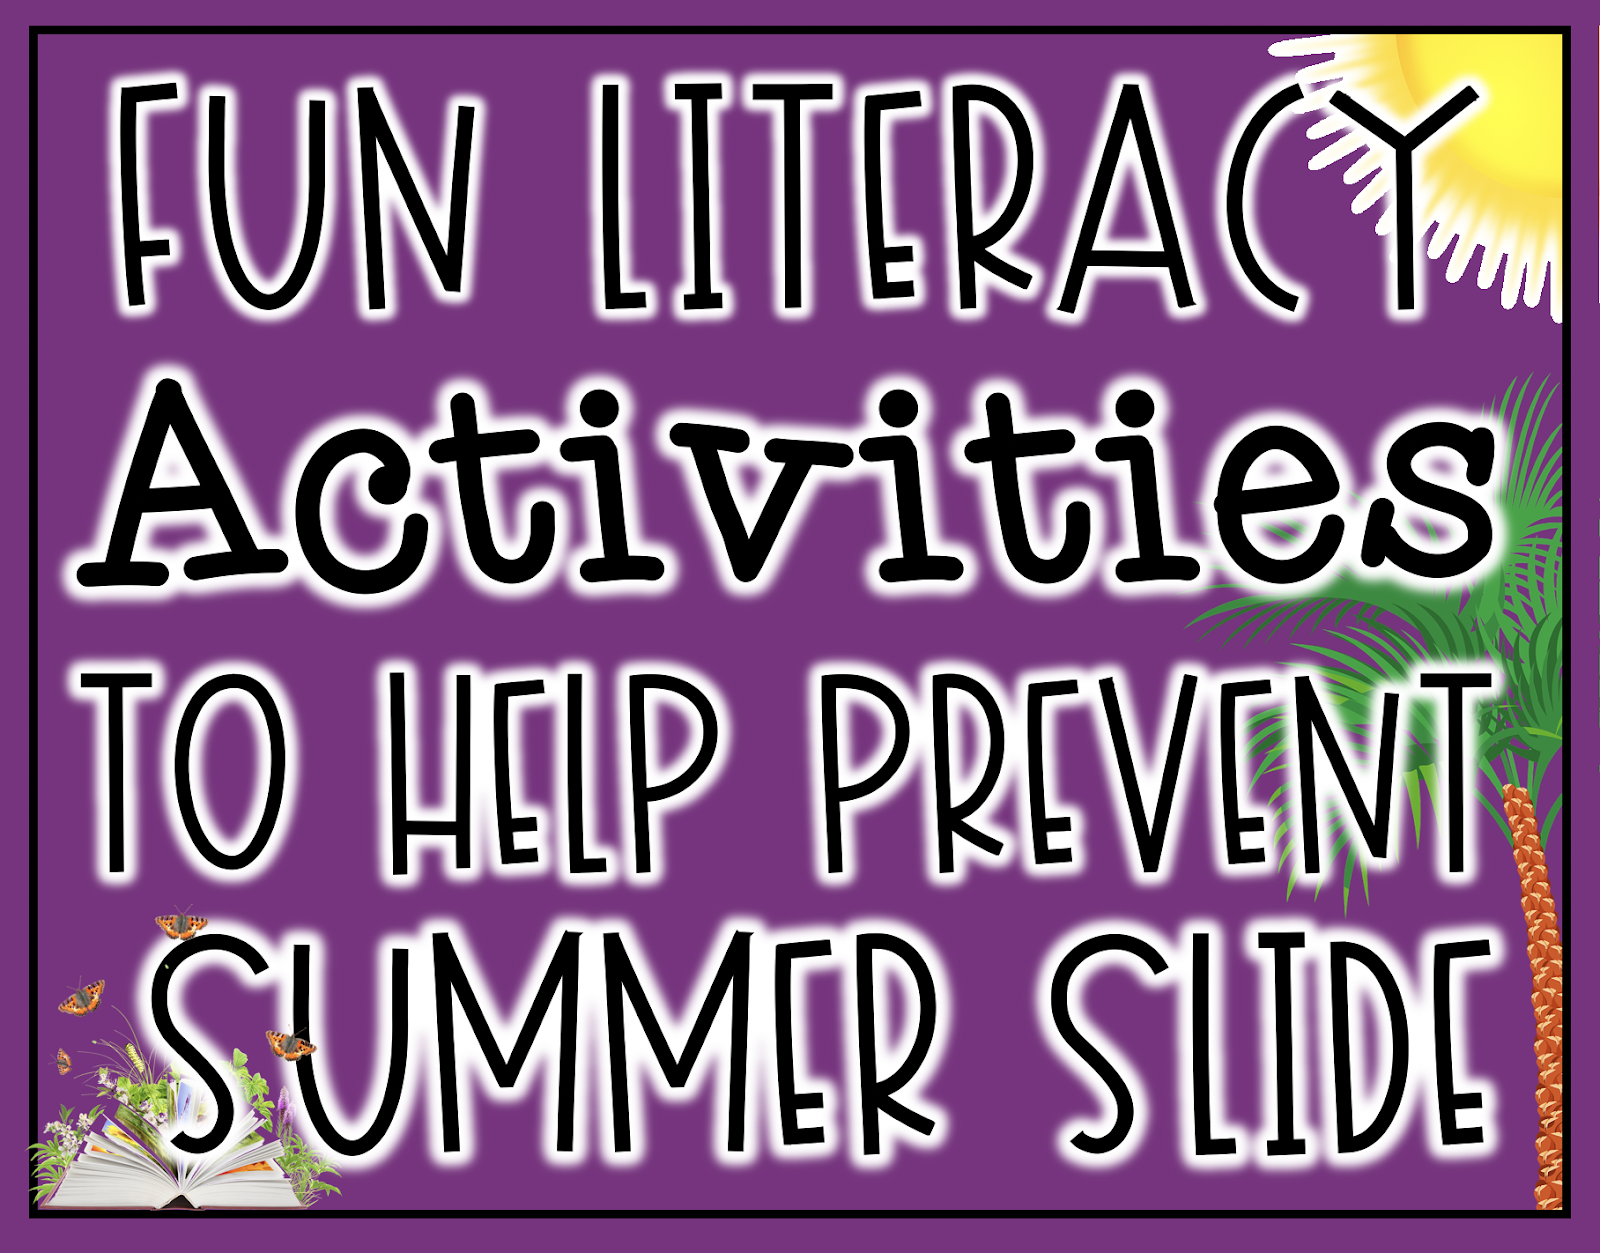 Fun literacy activities to help prevent summer slide that involve STEM and various types of technology.